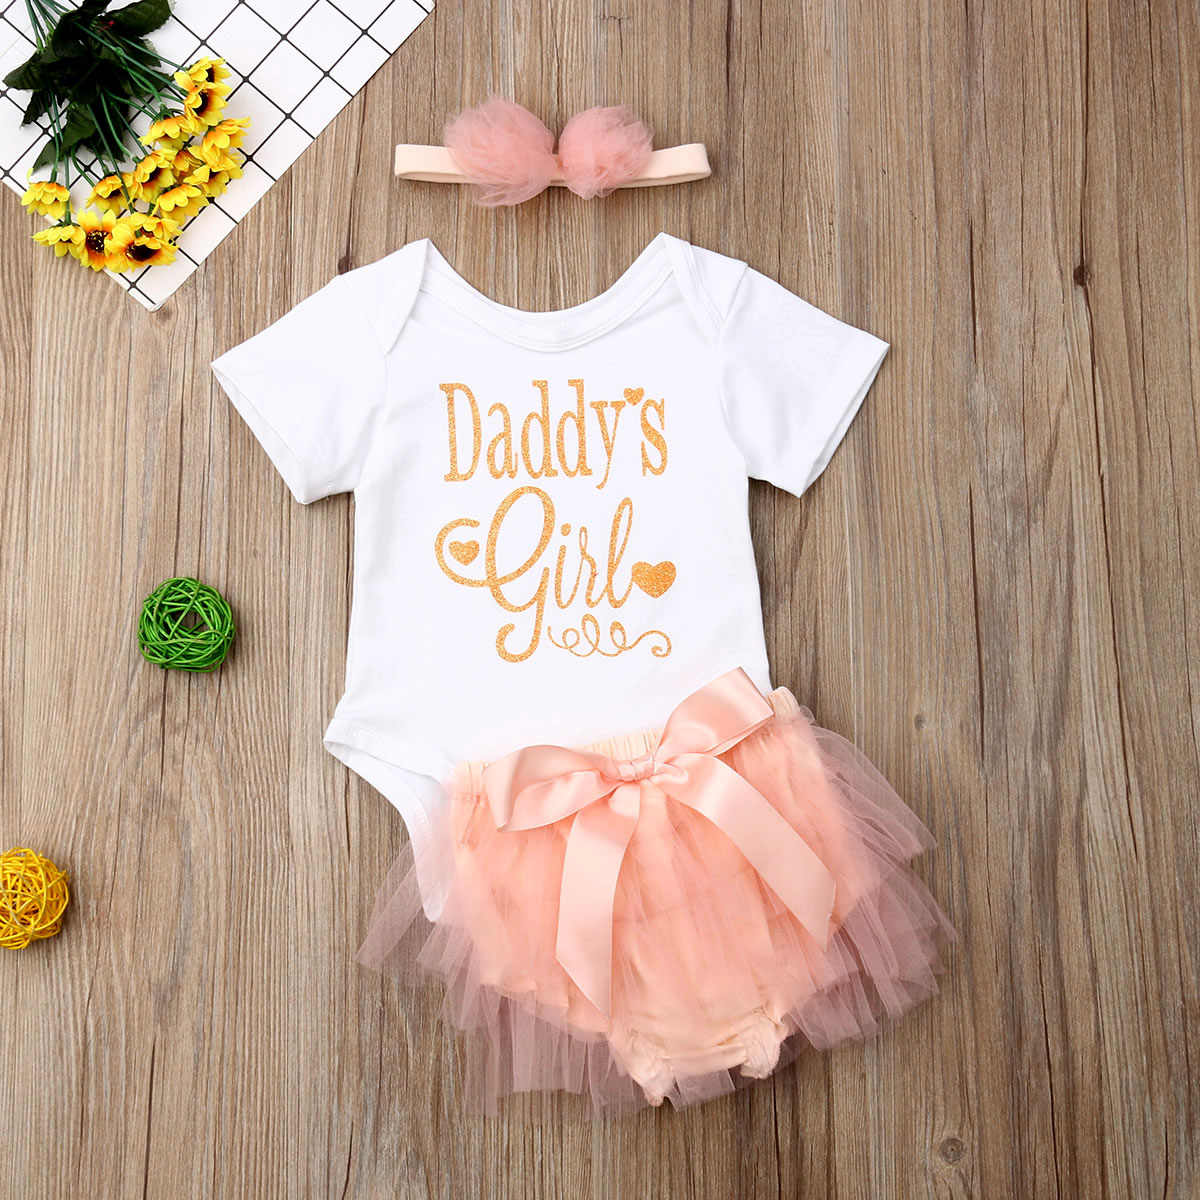 133e1c055cf59 3Pcs Baby Outfit Clothes Girls Letter Romper Tops Mesh Shorts Shinny  Jumpsuit Newborn Fathers Day Clothes Set